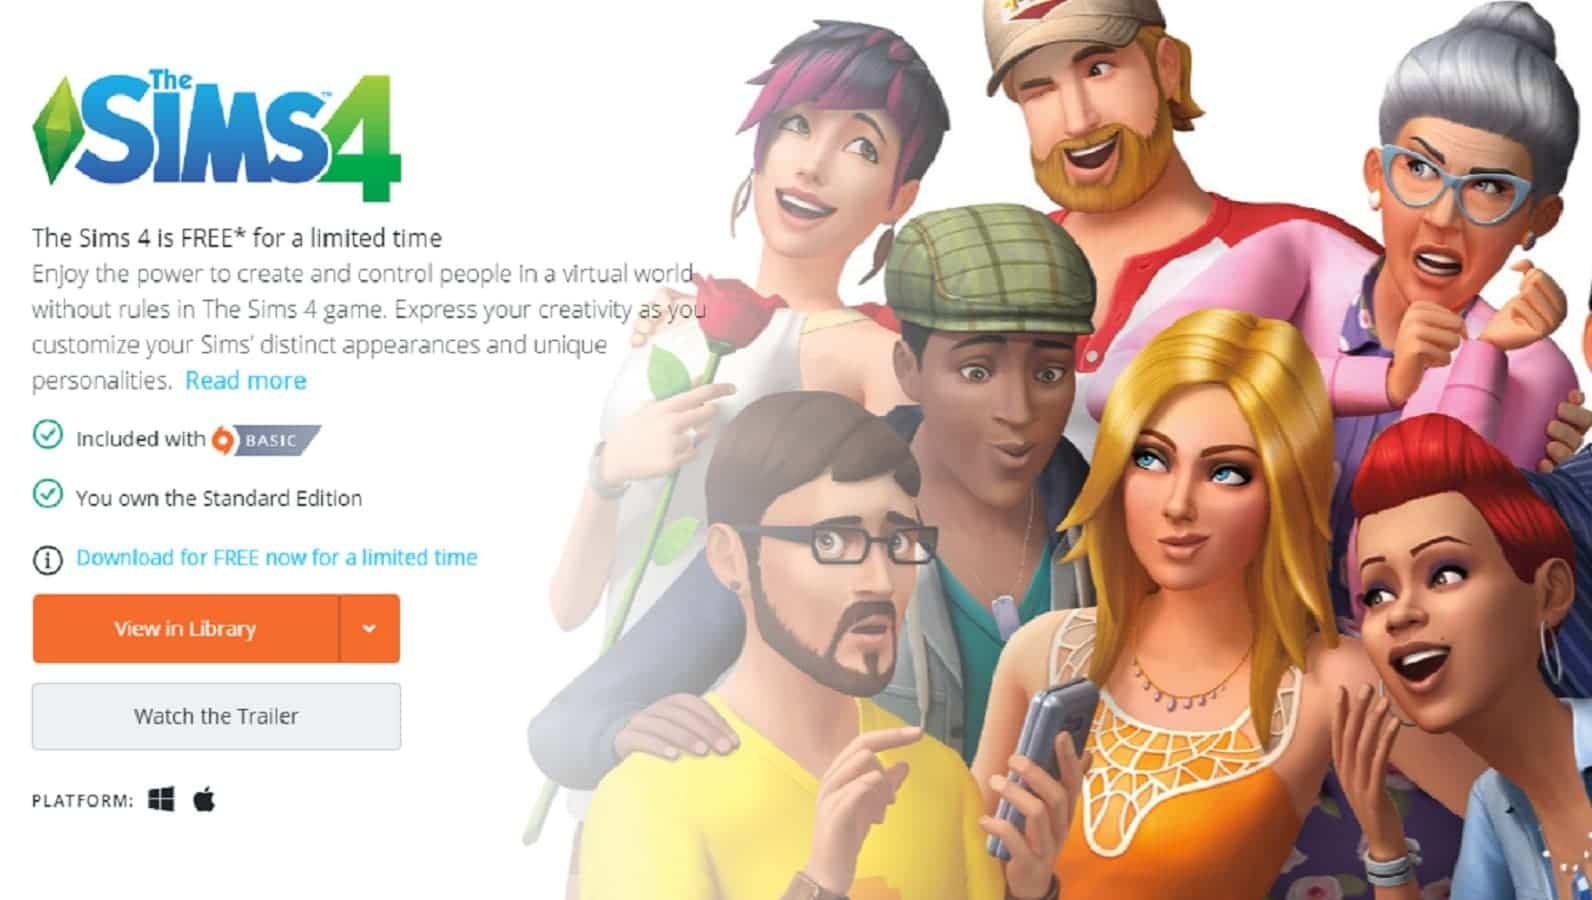 Yo, you can get The Sims 4 fo' free on PC right now